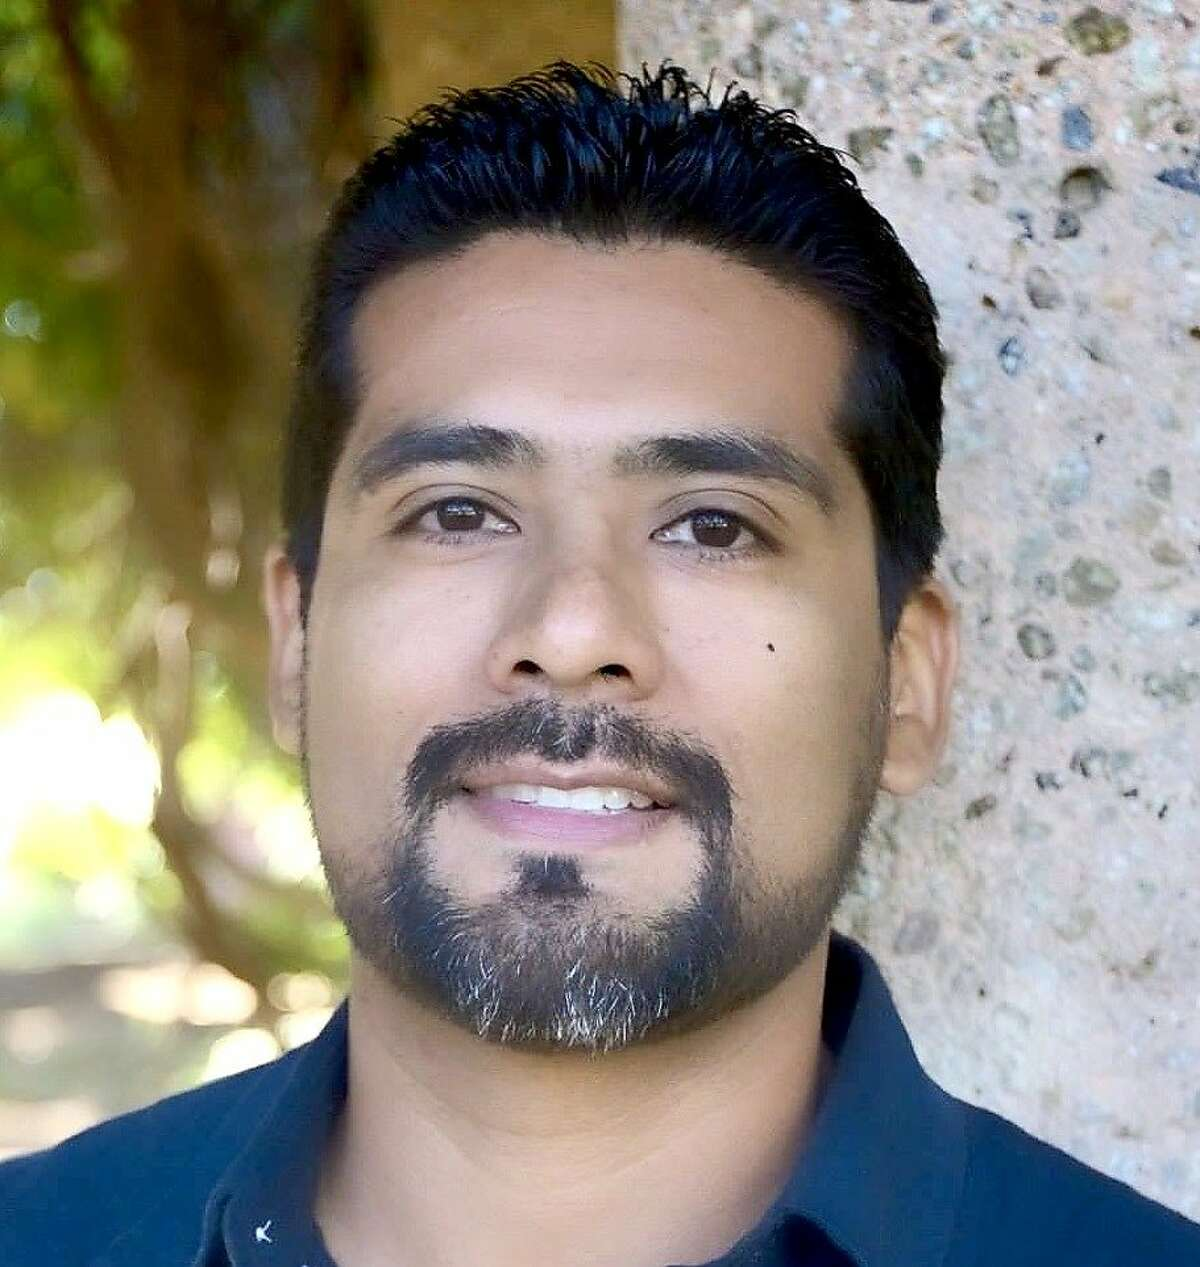 Victor Rios, a professor of sociology and associate dean at UC Santa Barbara, is among many people of color who found intellectual support and hope at the Institute for the Study of Societal Issues at UC Berkeley. The university intends to dismantle ISSI.